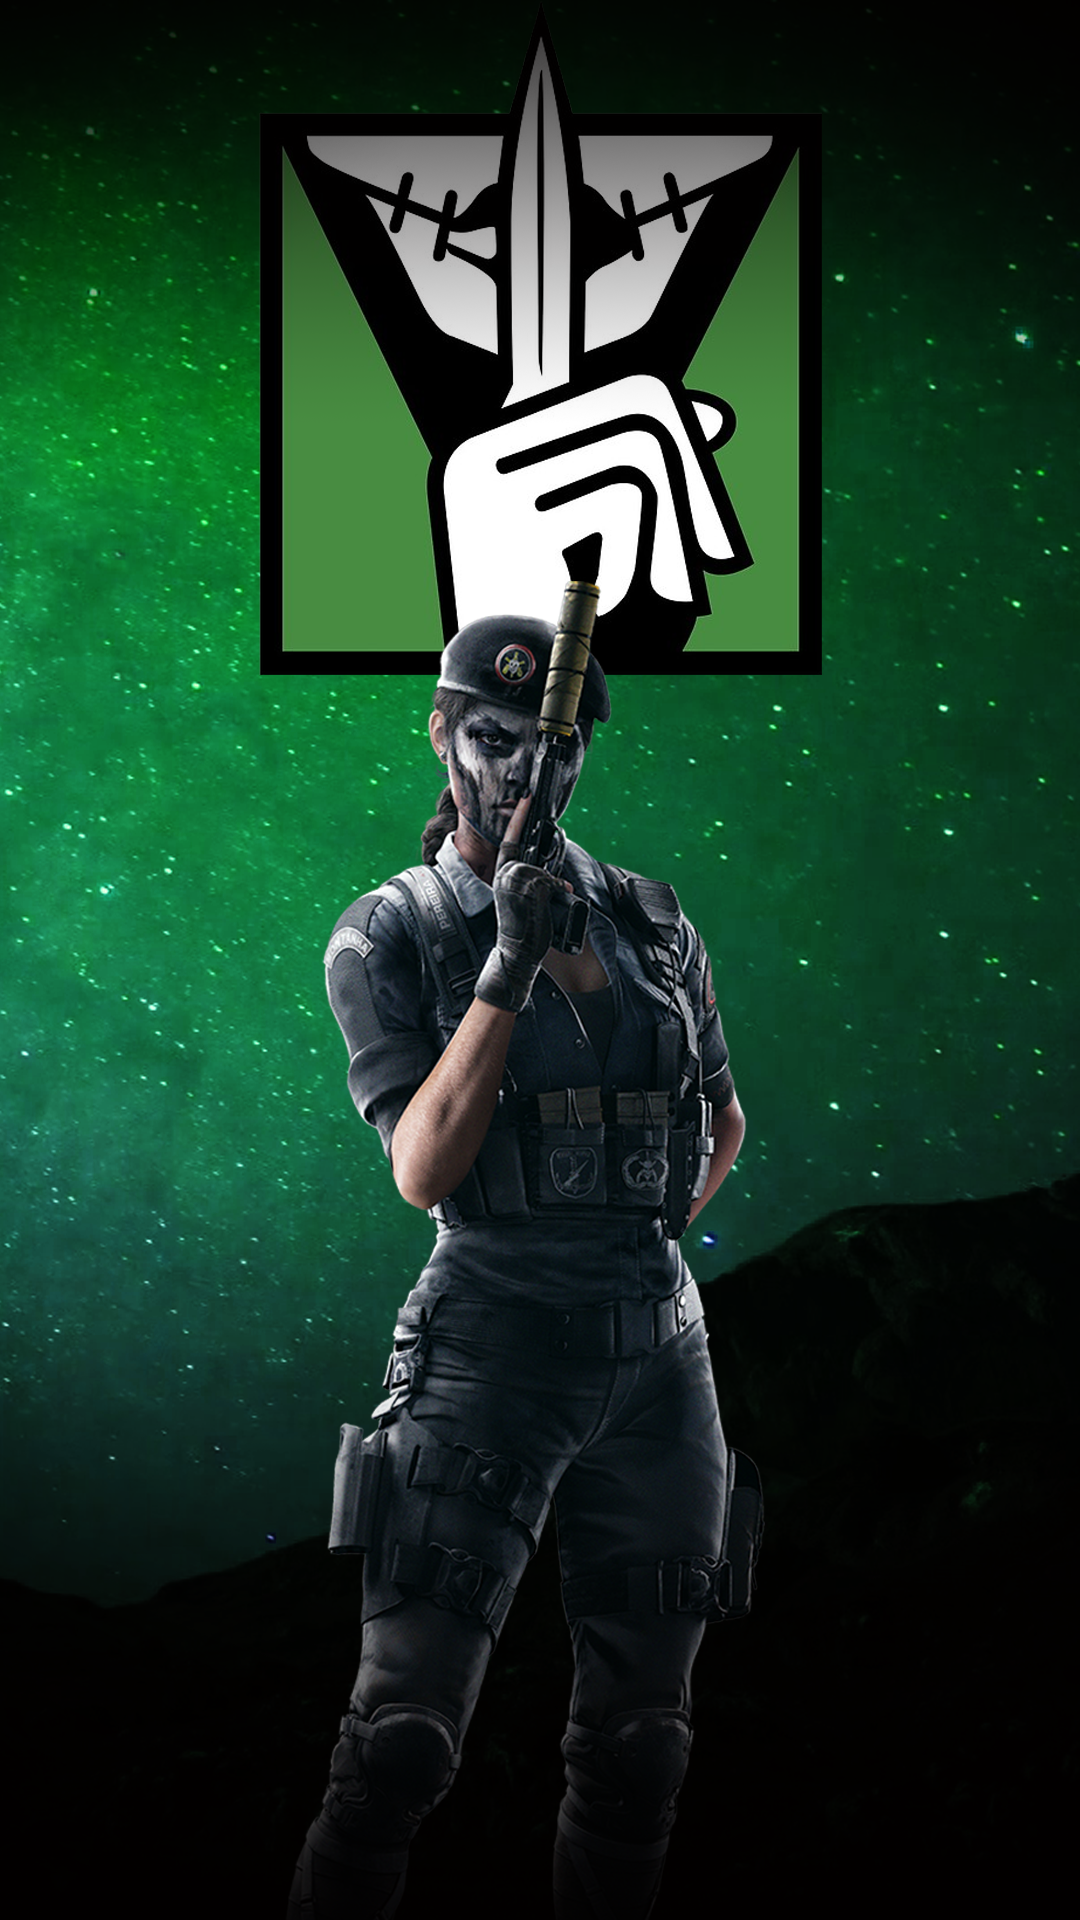 Free Download Caveira Wallpaper Rainbow6 1080x1920 For Your